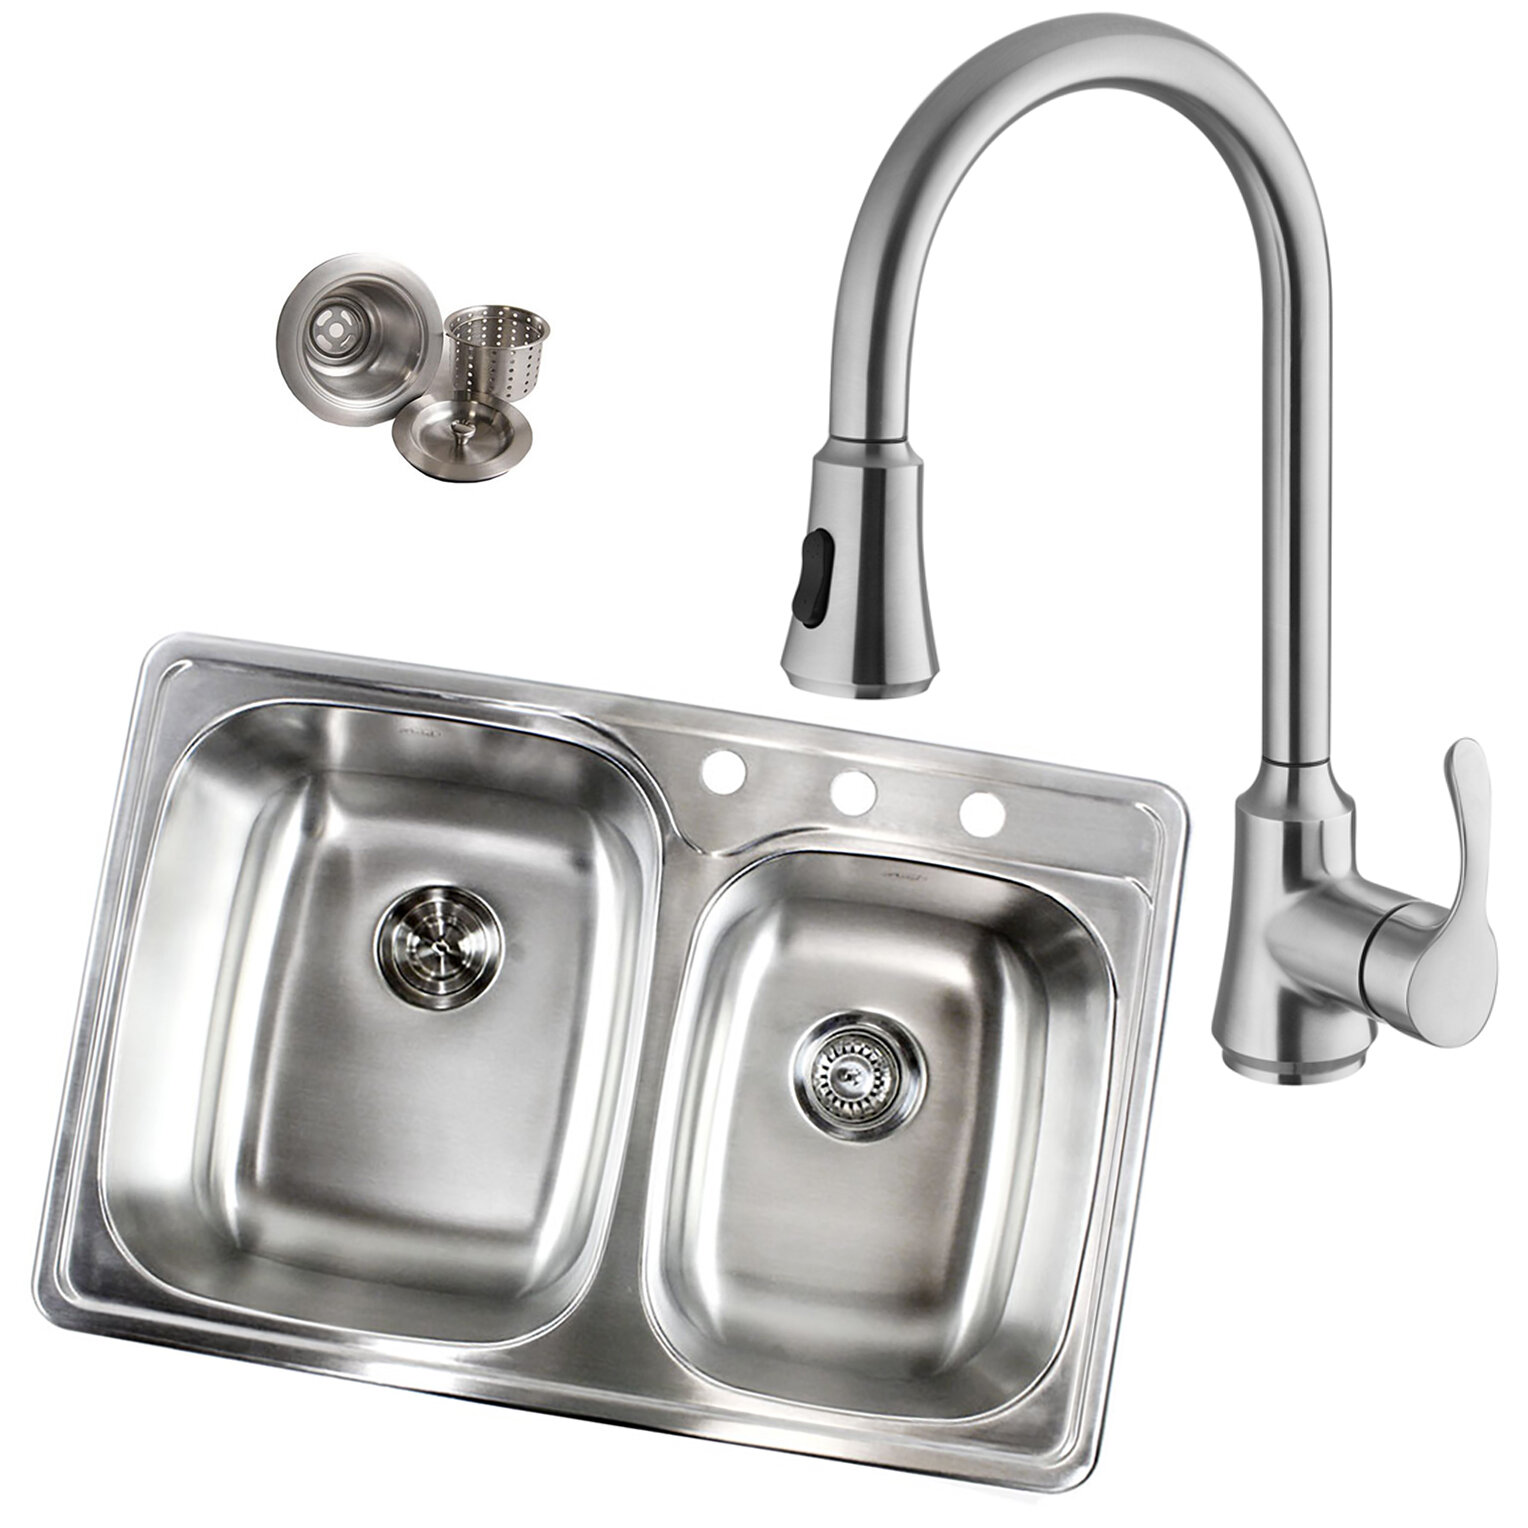 Picture of: Tools Home Improvement 33 Inch Top Mount Drop In Stainless Steel 70 30 Double Bowl Kitchen Sink With 3 Faucet Holes 18 Gauge Double Bowl